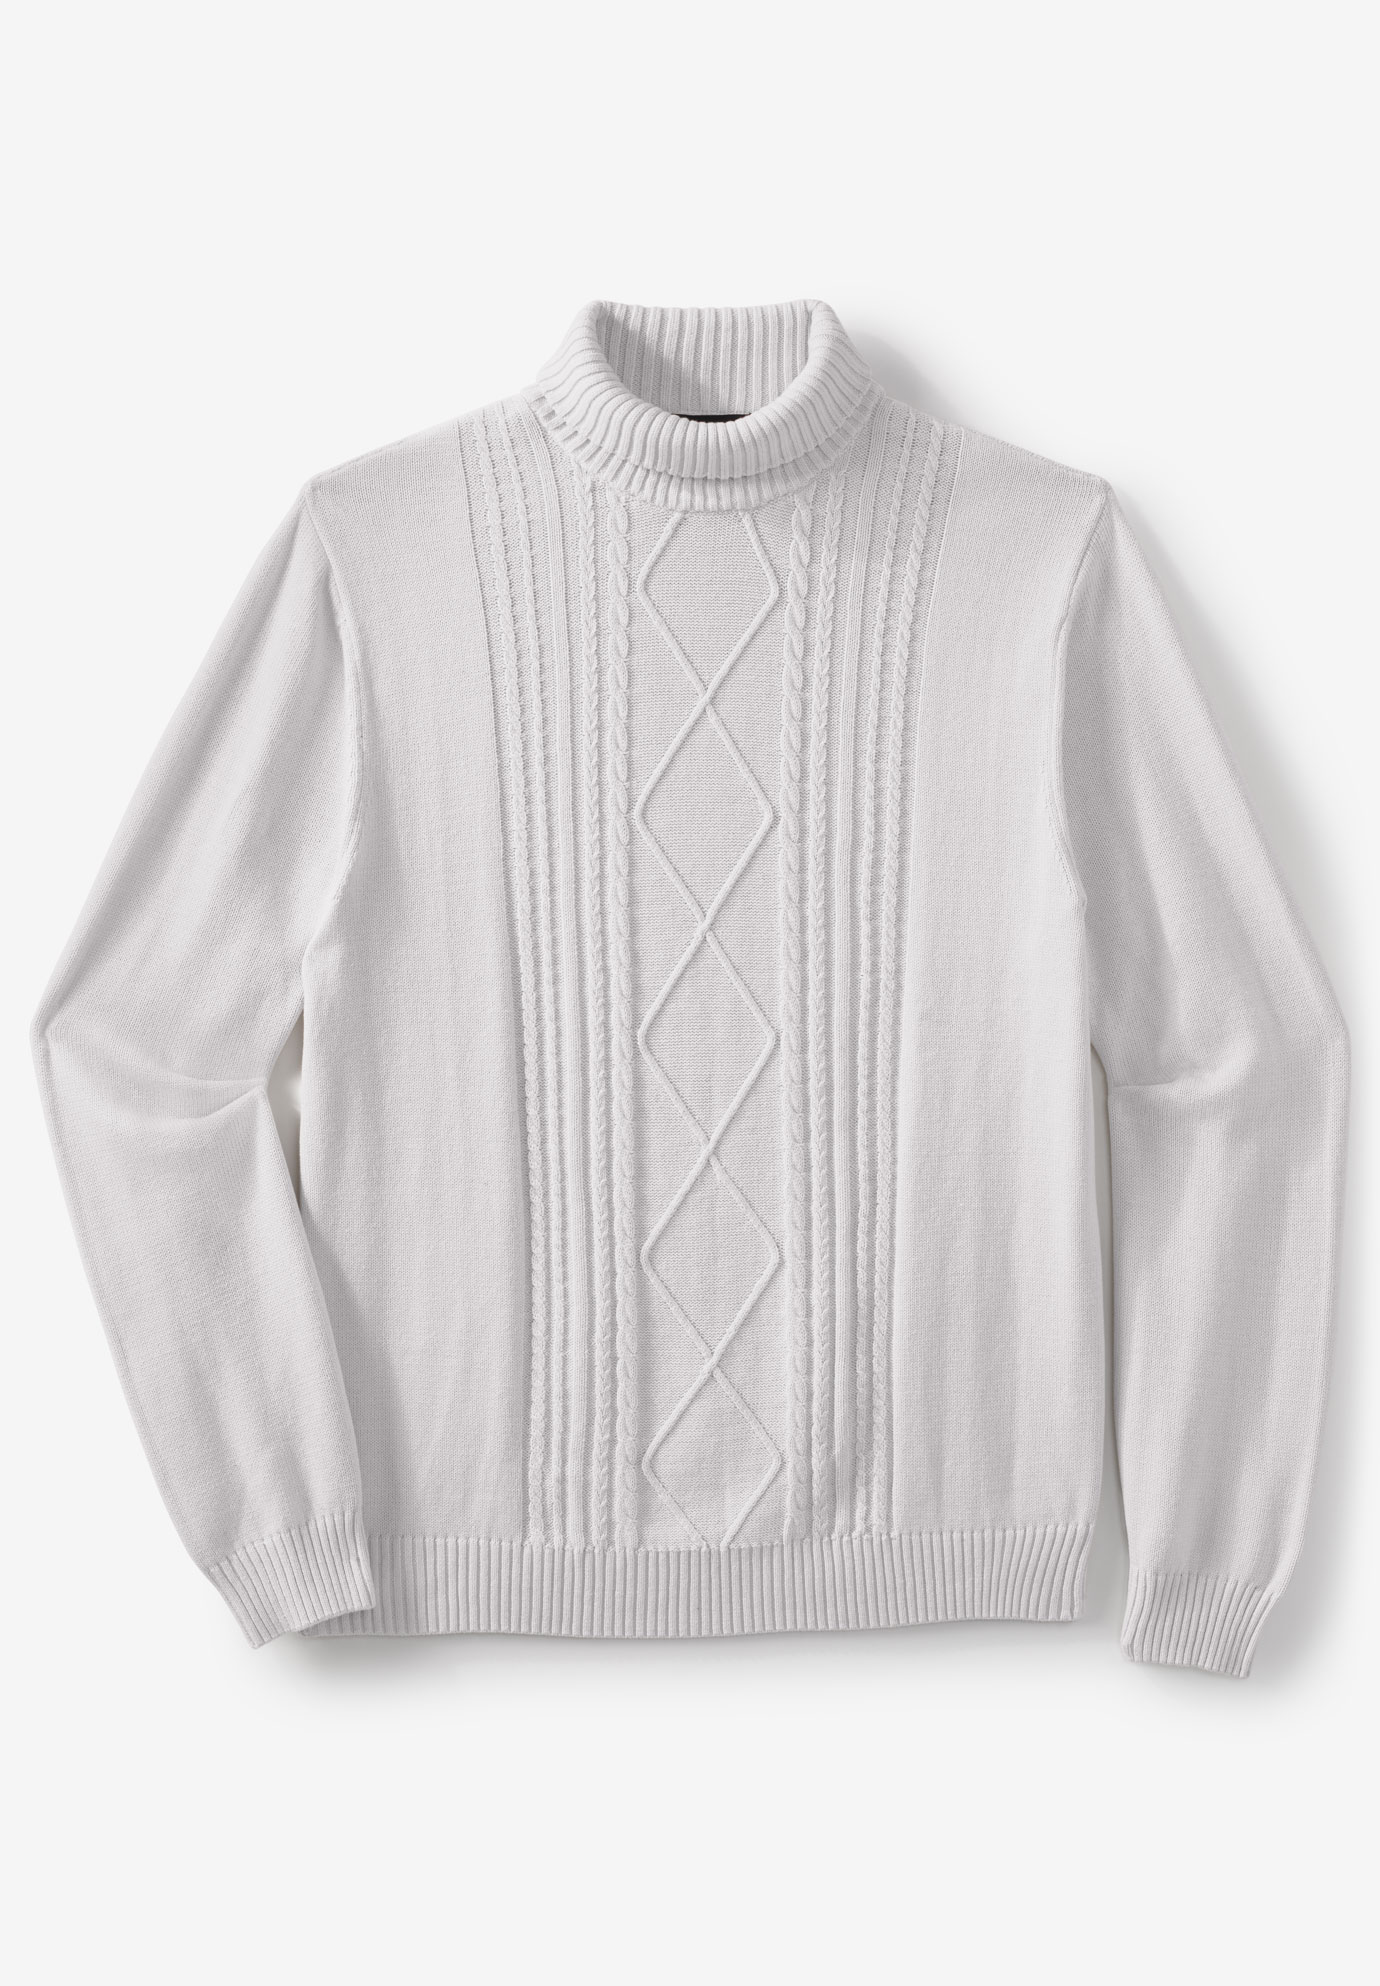 Liberty Blues™ Shoreman's Cable Knit Turtleneck Sweater,